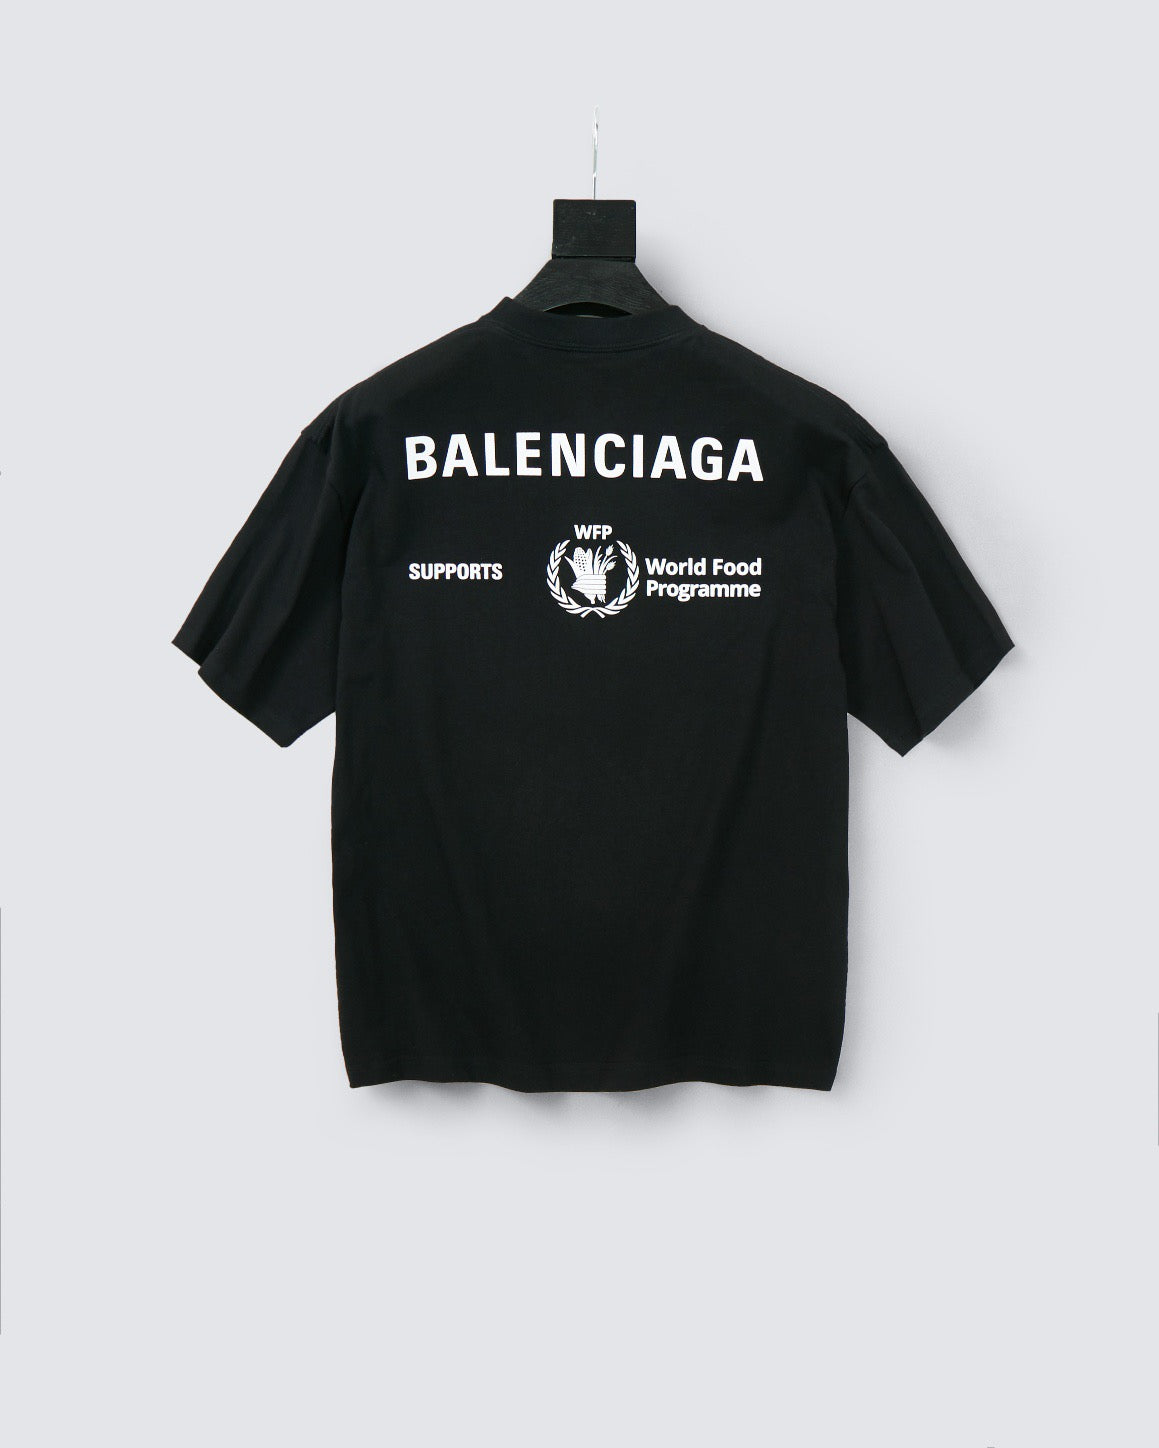 Balenciaga World Food Program Shirt Off 77 Free Shipping